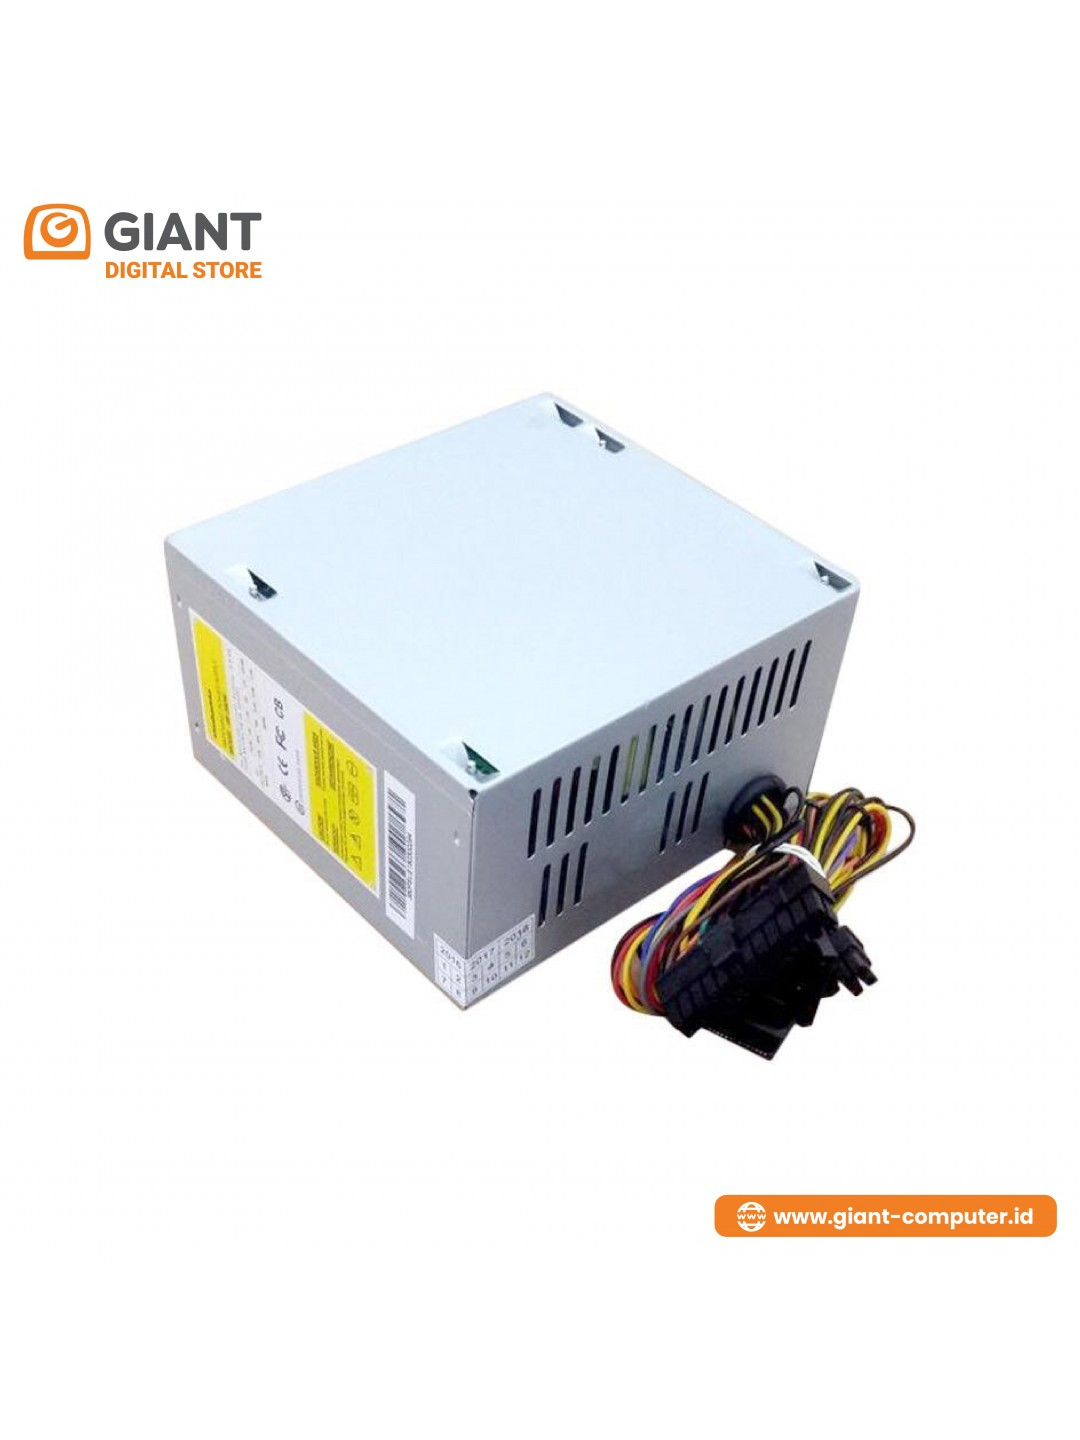 POWER SUPPLY (PSU) SIMBADDA 350W (MODEL SZ-350 WP4)